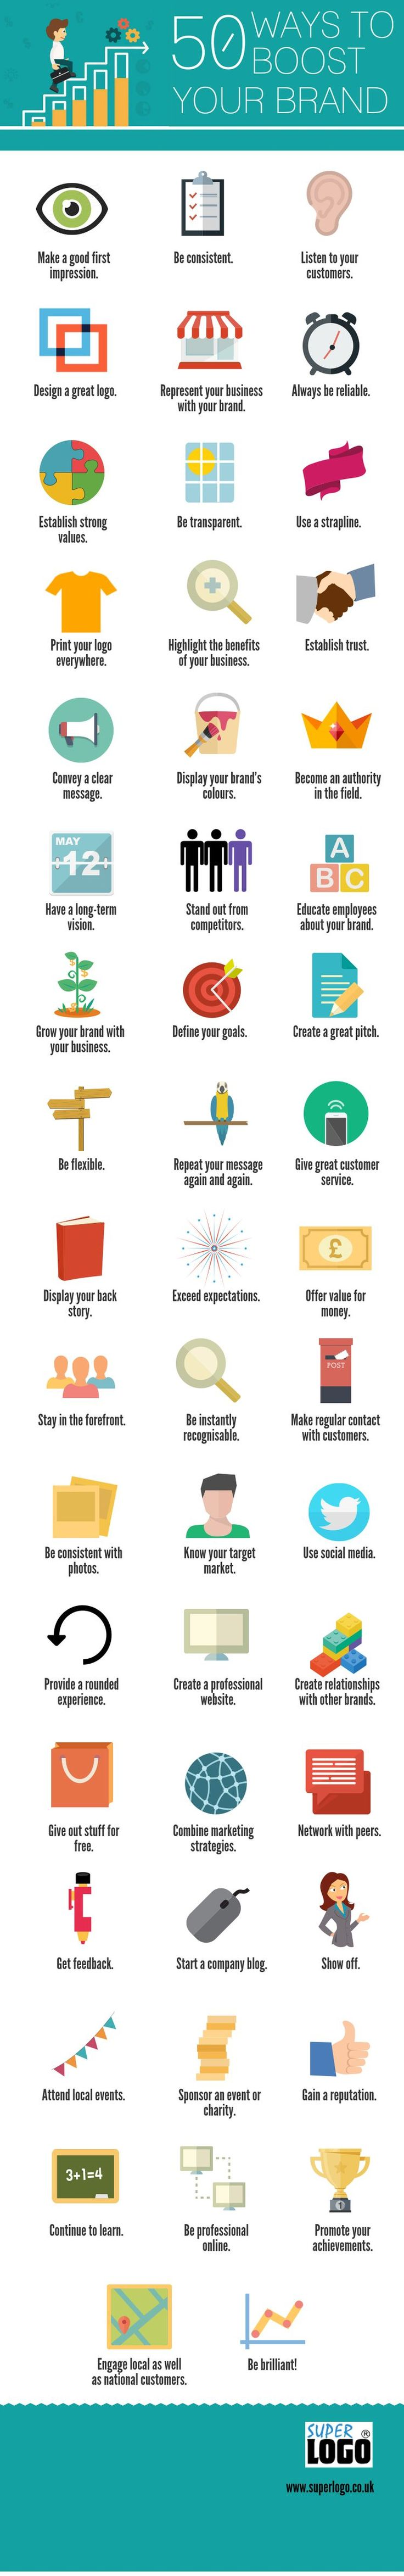 A listing of the easiest and best ways to build your brand quickly and effectively | infographic | personal branding